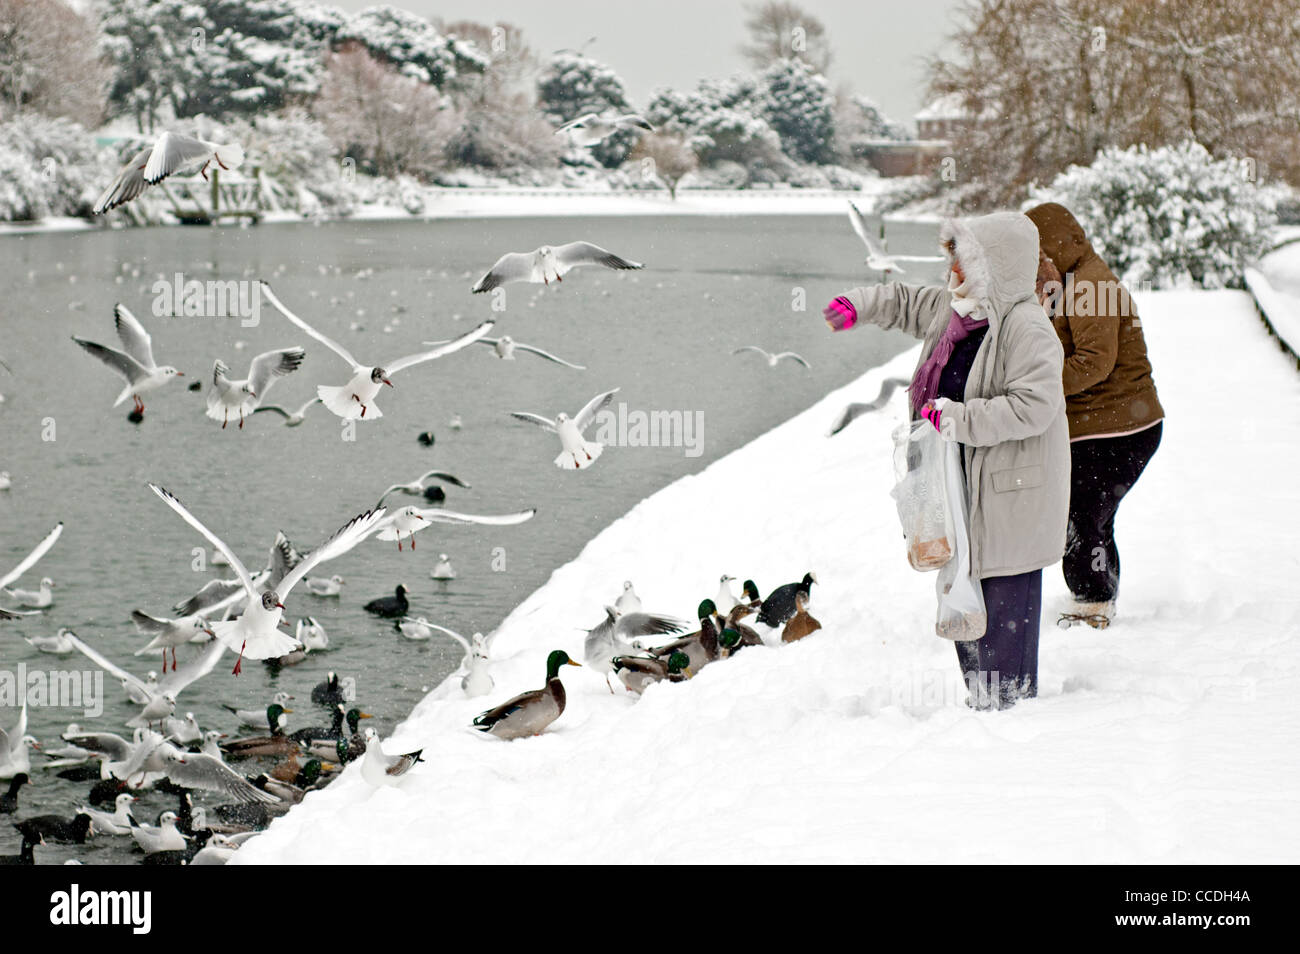 people-feeding-birds-and-ducks-on-an-icy-lake-after-some-snow-in-the-CCDH4A.jpg